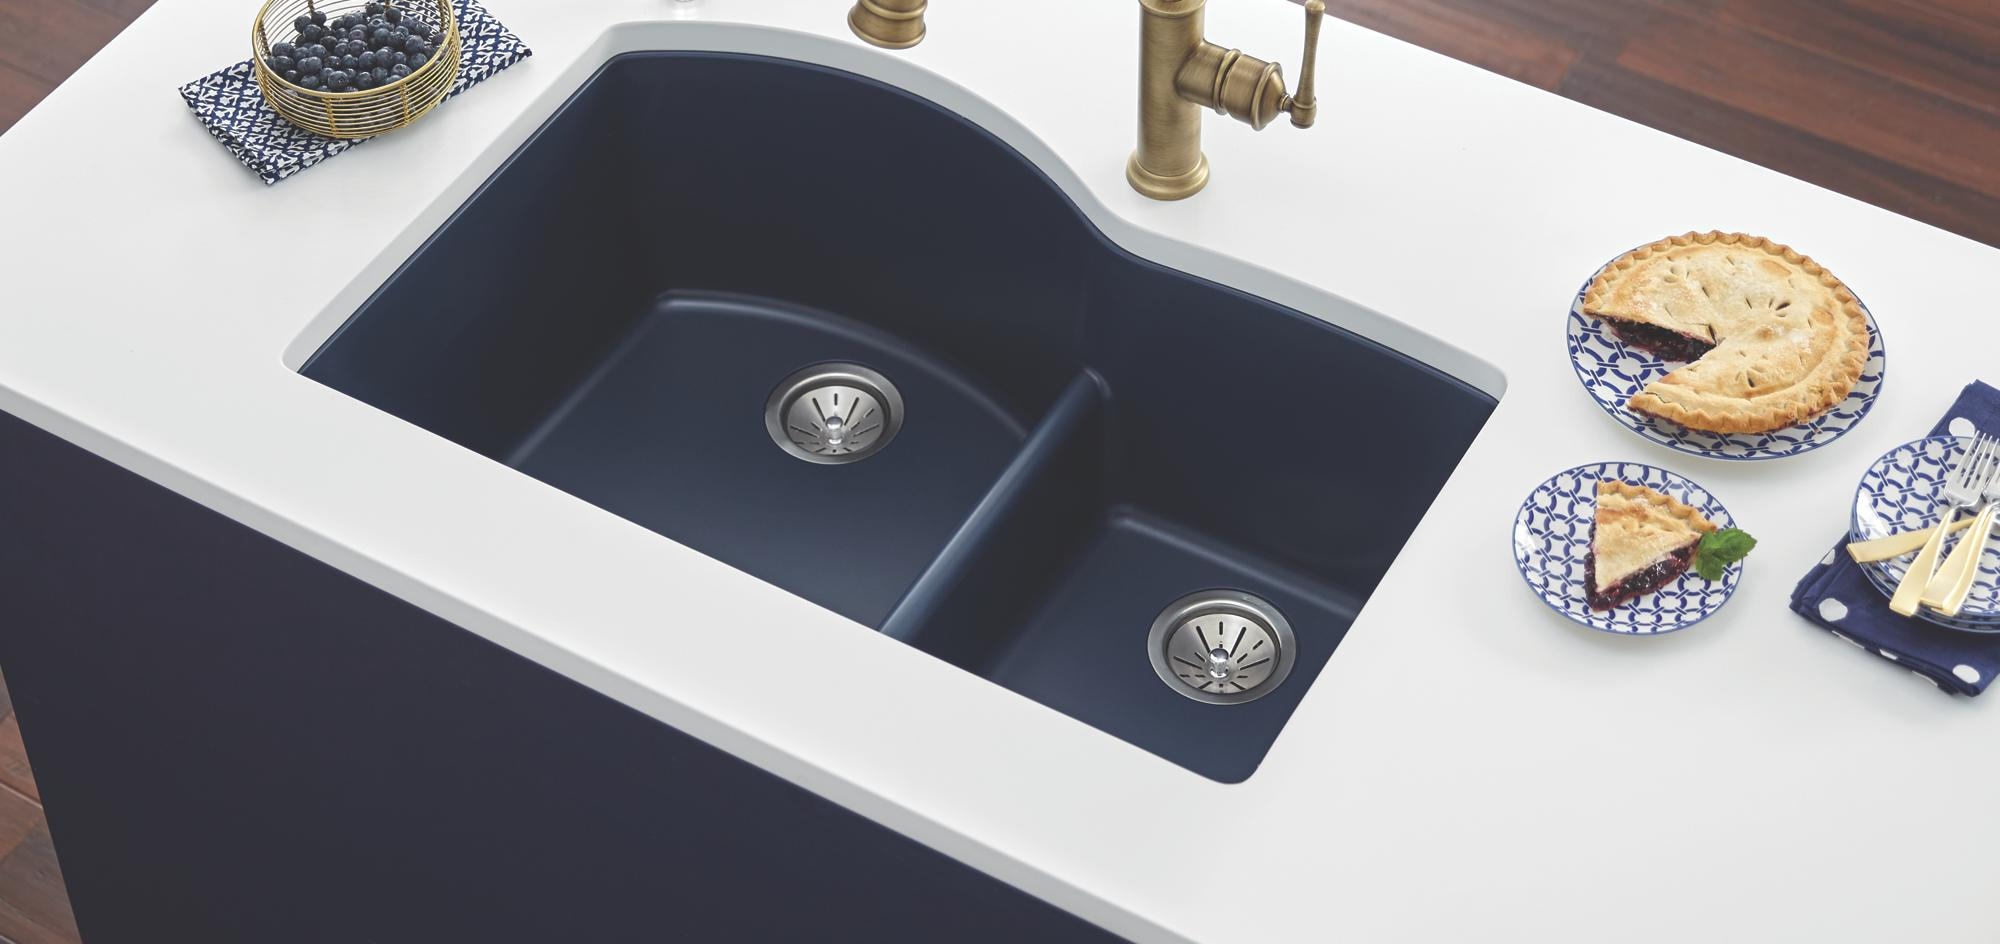 For a higher resale value, choose an undermounted sink